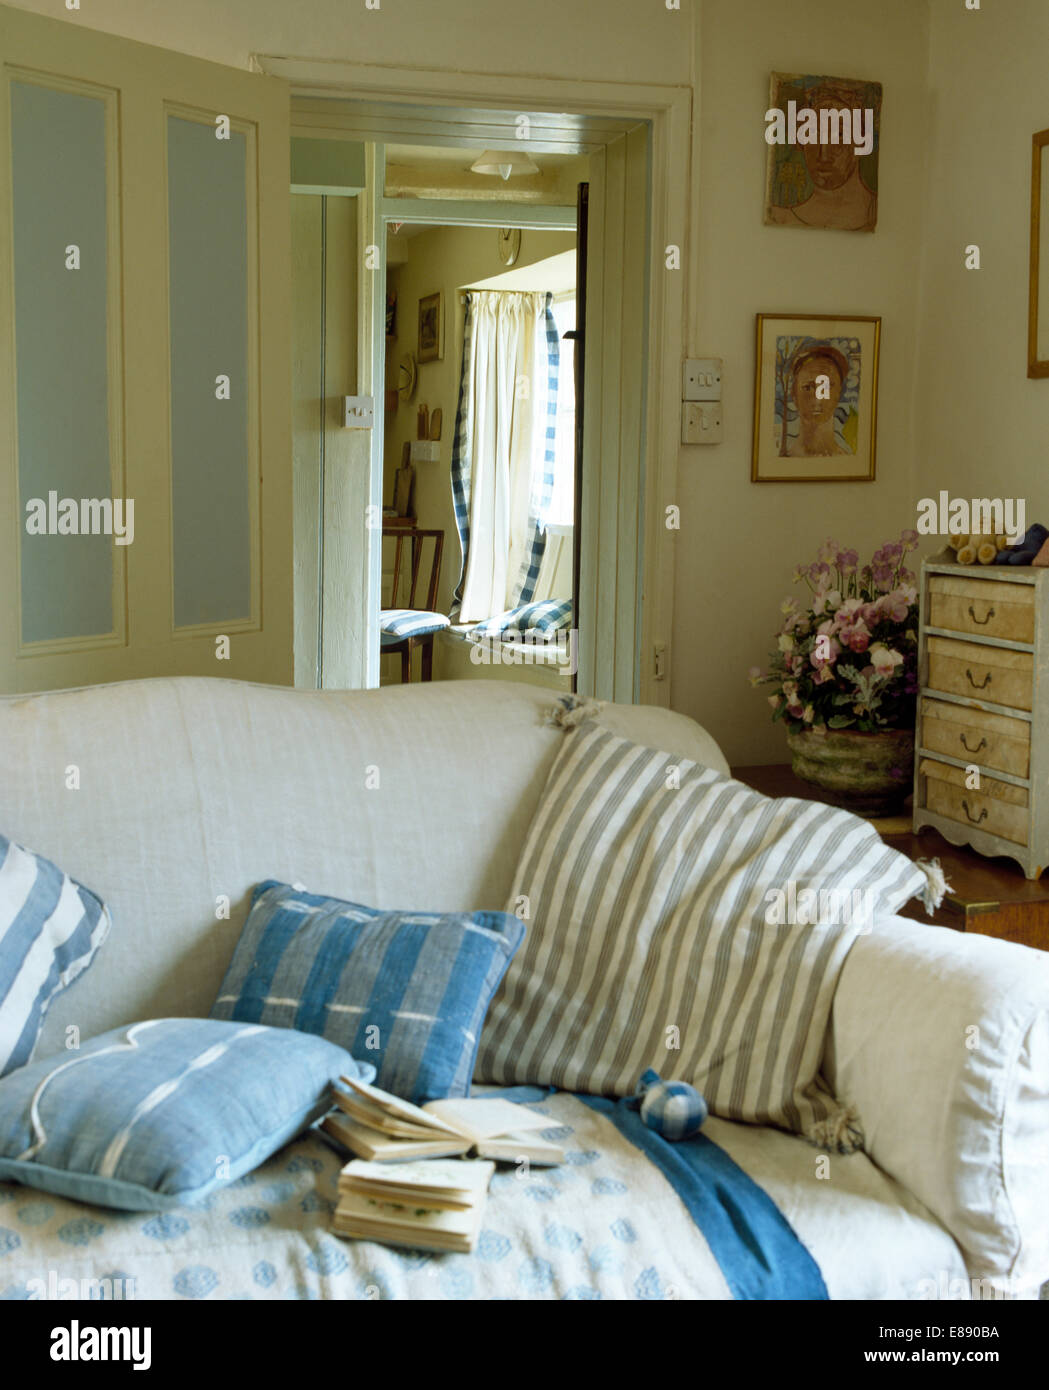 Blue Cushions On White Sofa In Cottage Living Room   Stock Image